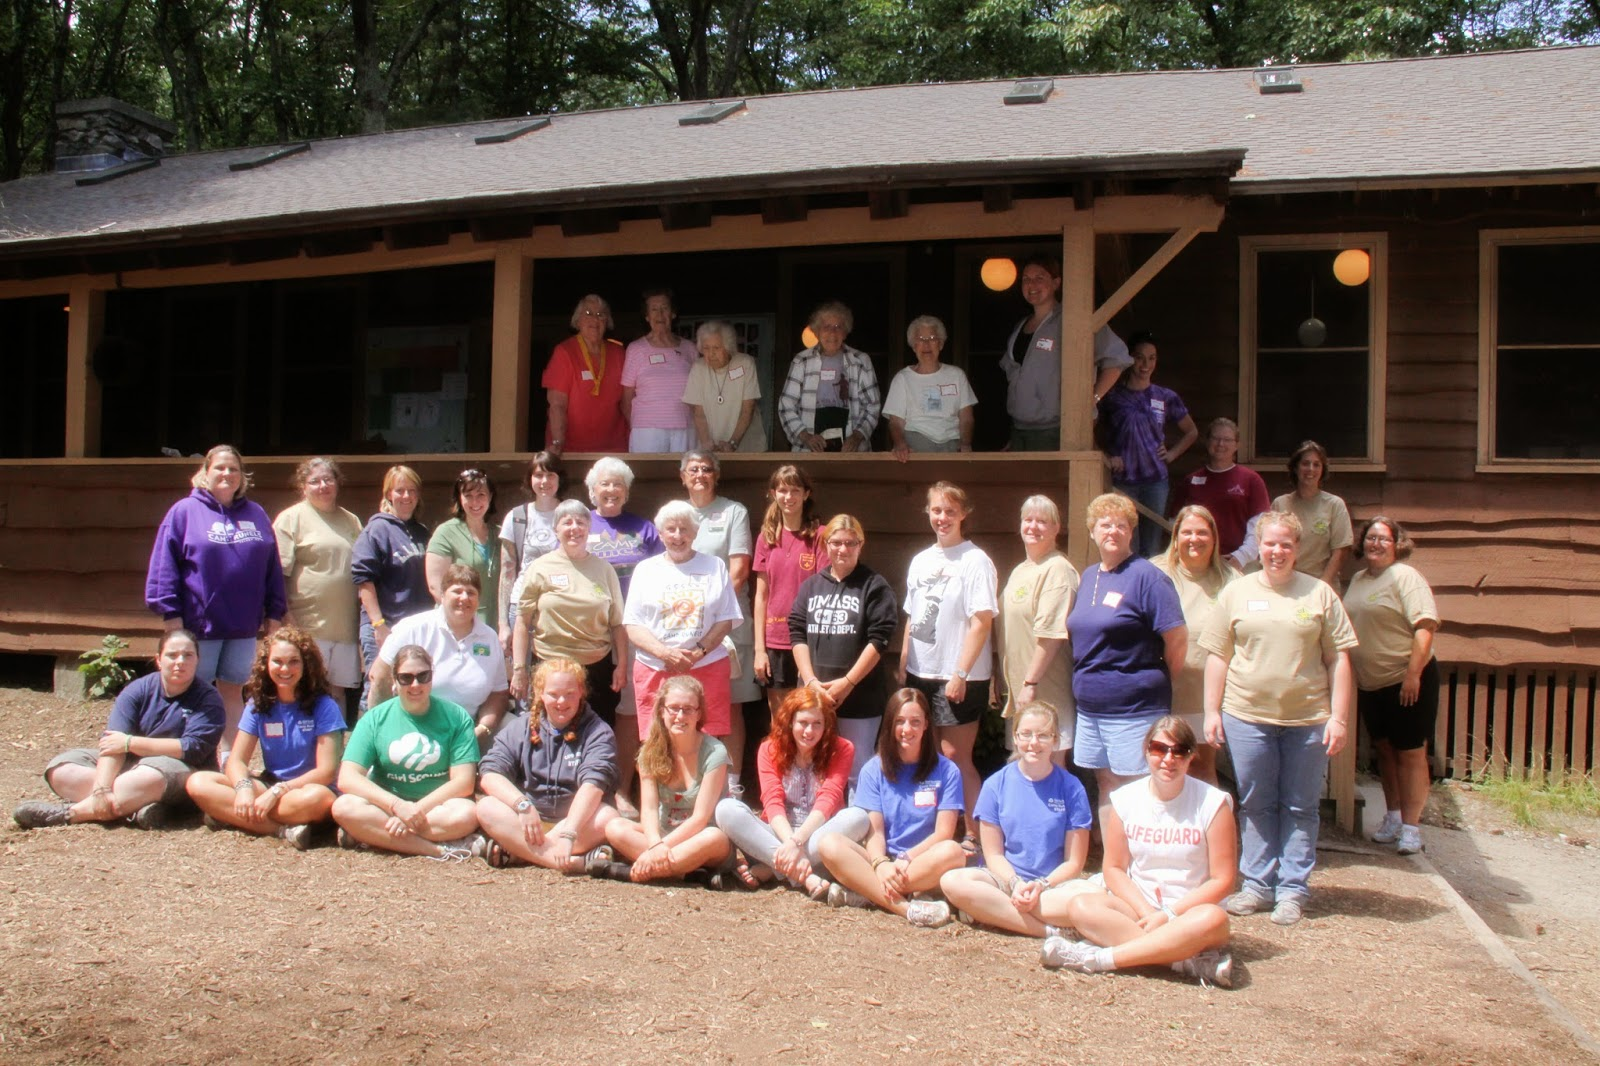 Horseback Riding Camps - Summer Camps Programs on